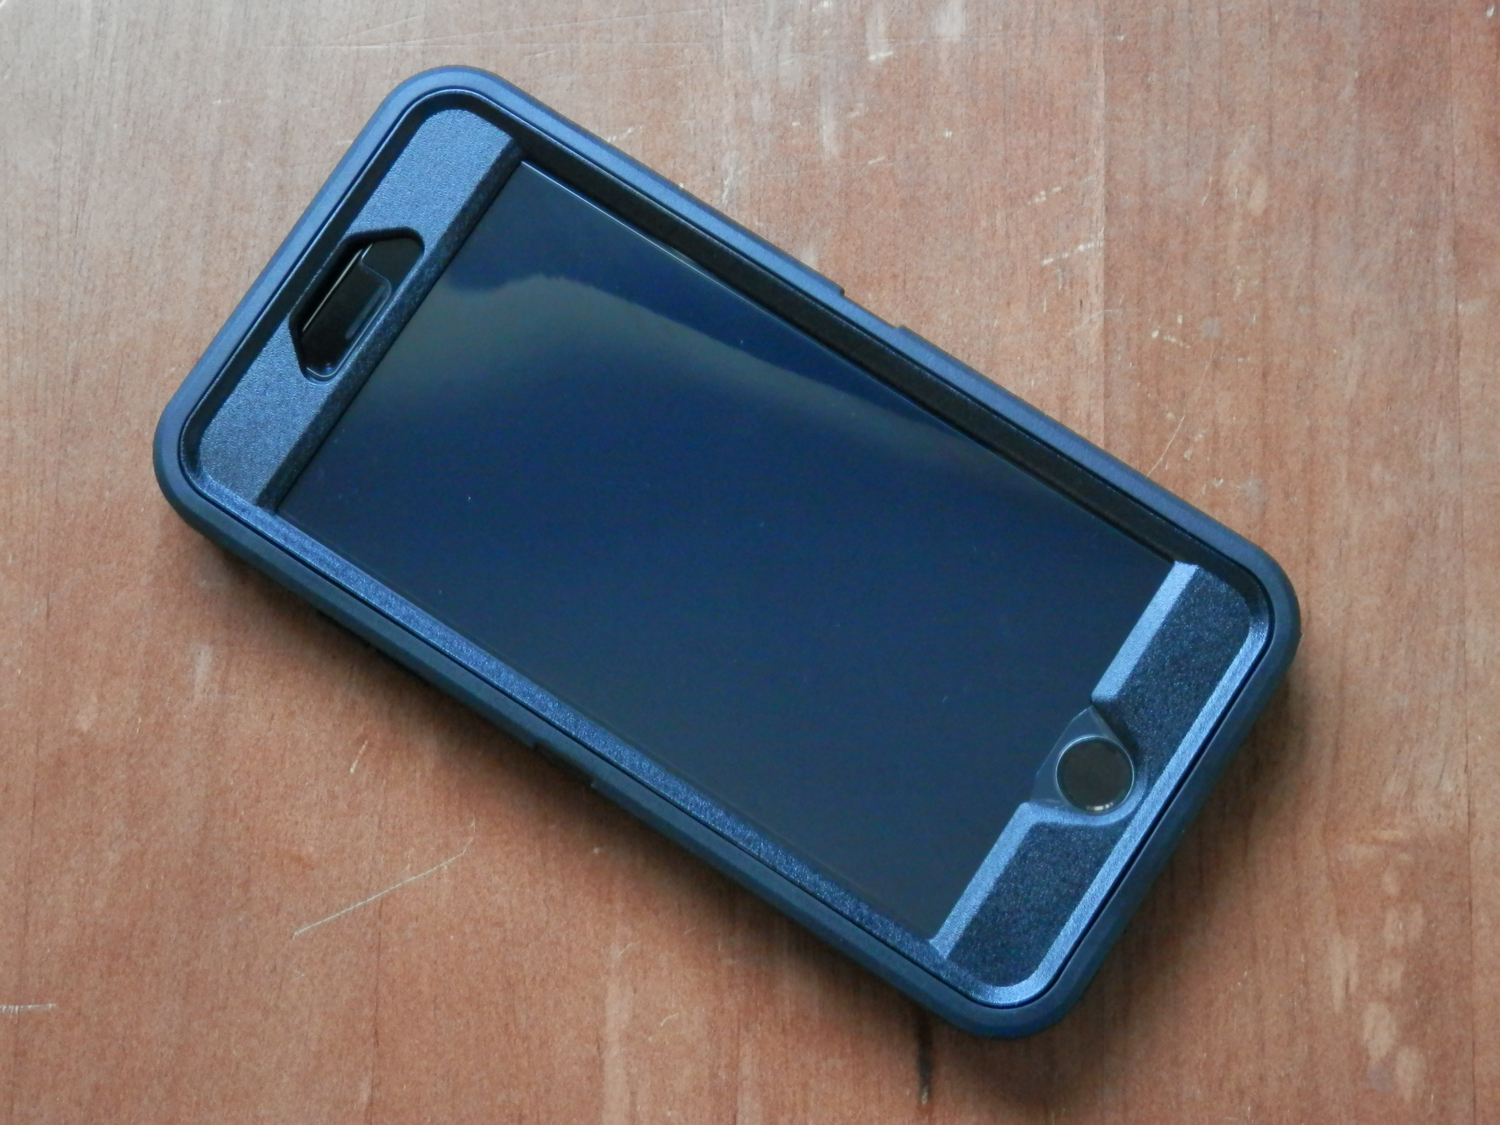 OtterBox iPhone cases shootout: which one should you get?